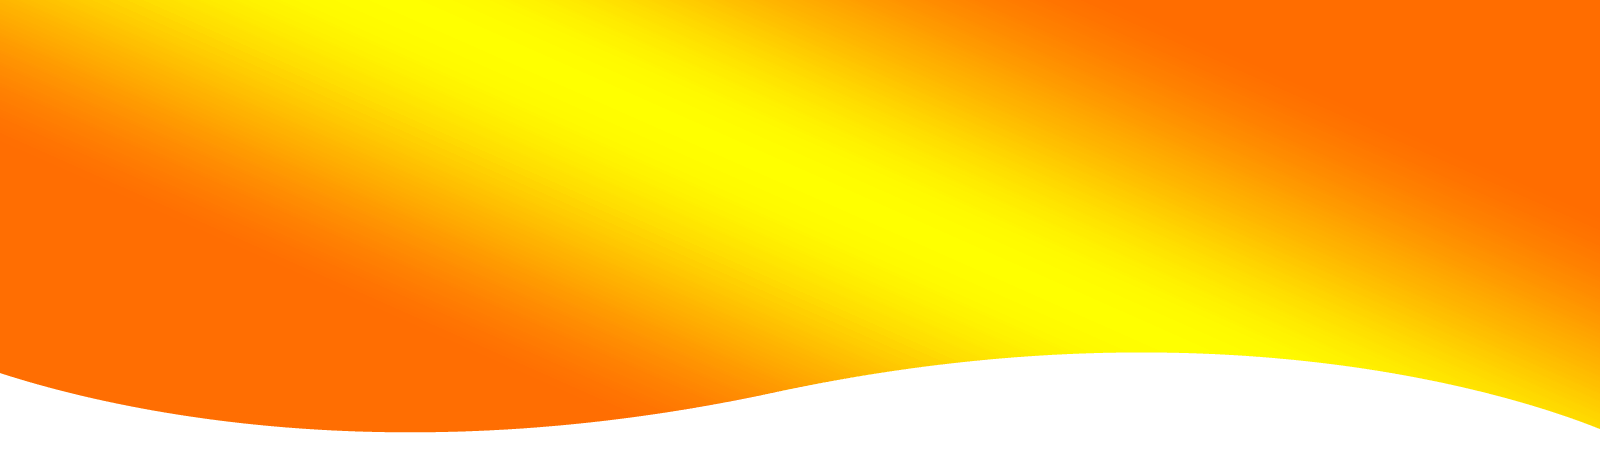 Orange Slider Background